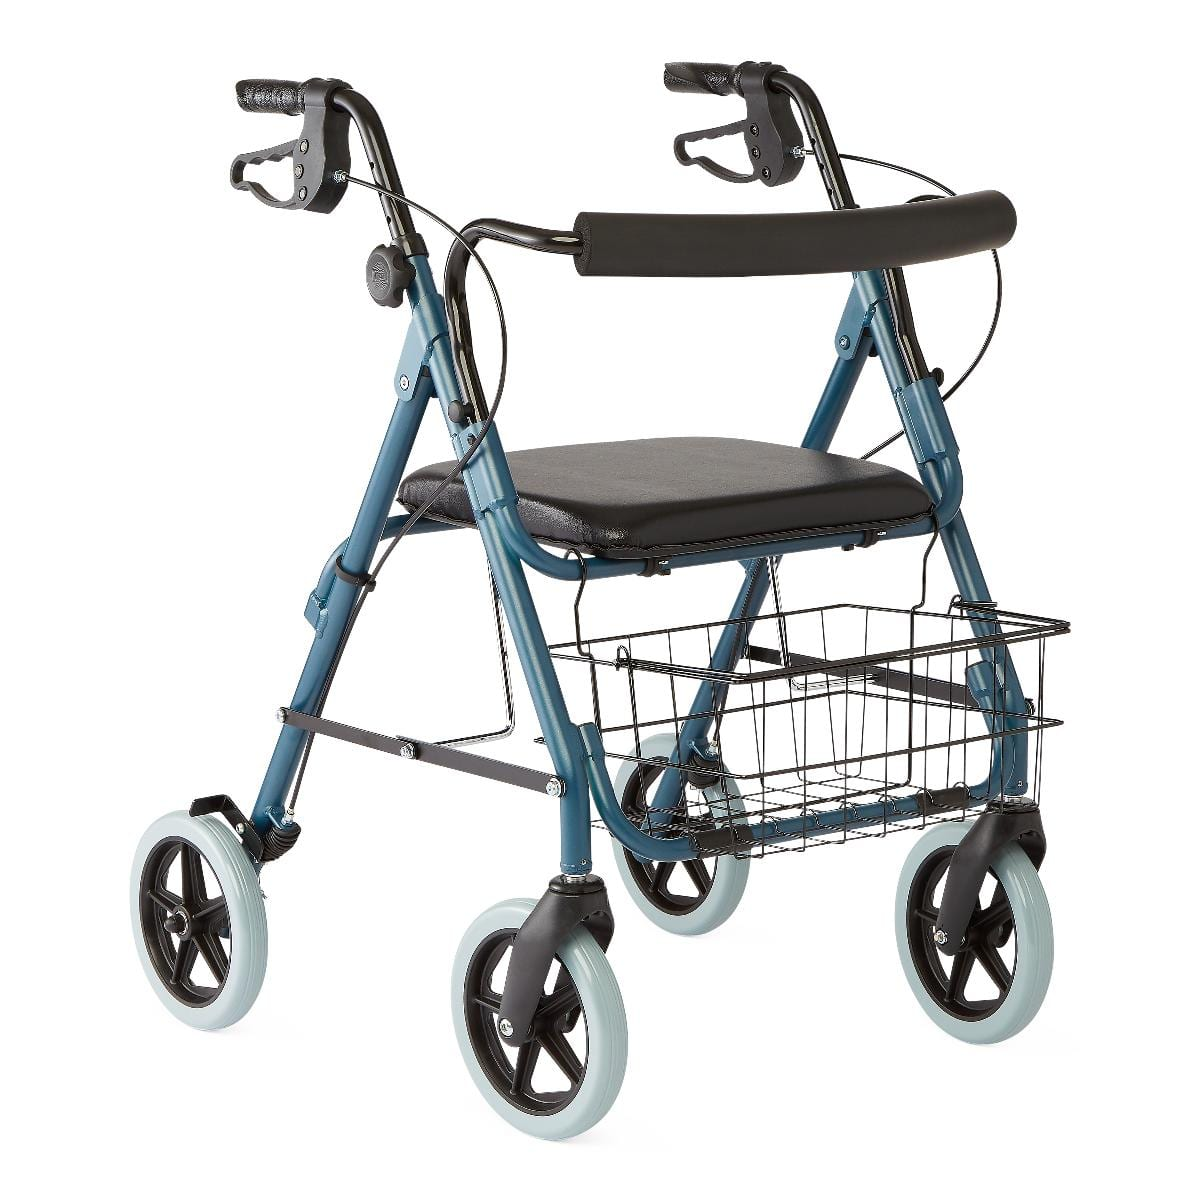 rollator holds 300 pounds